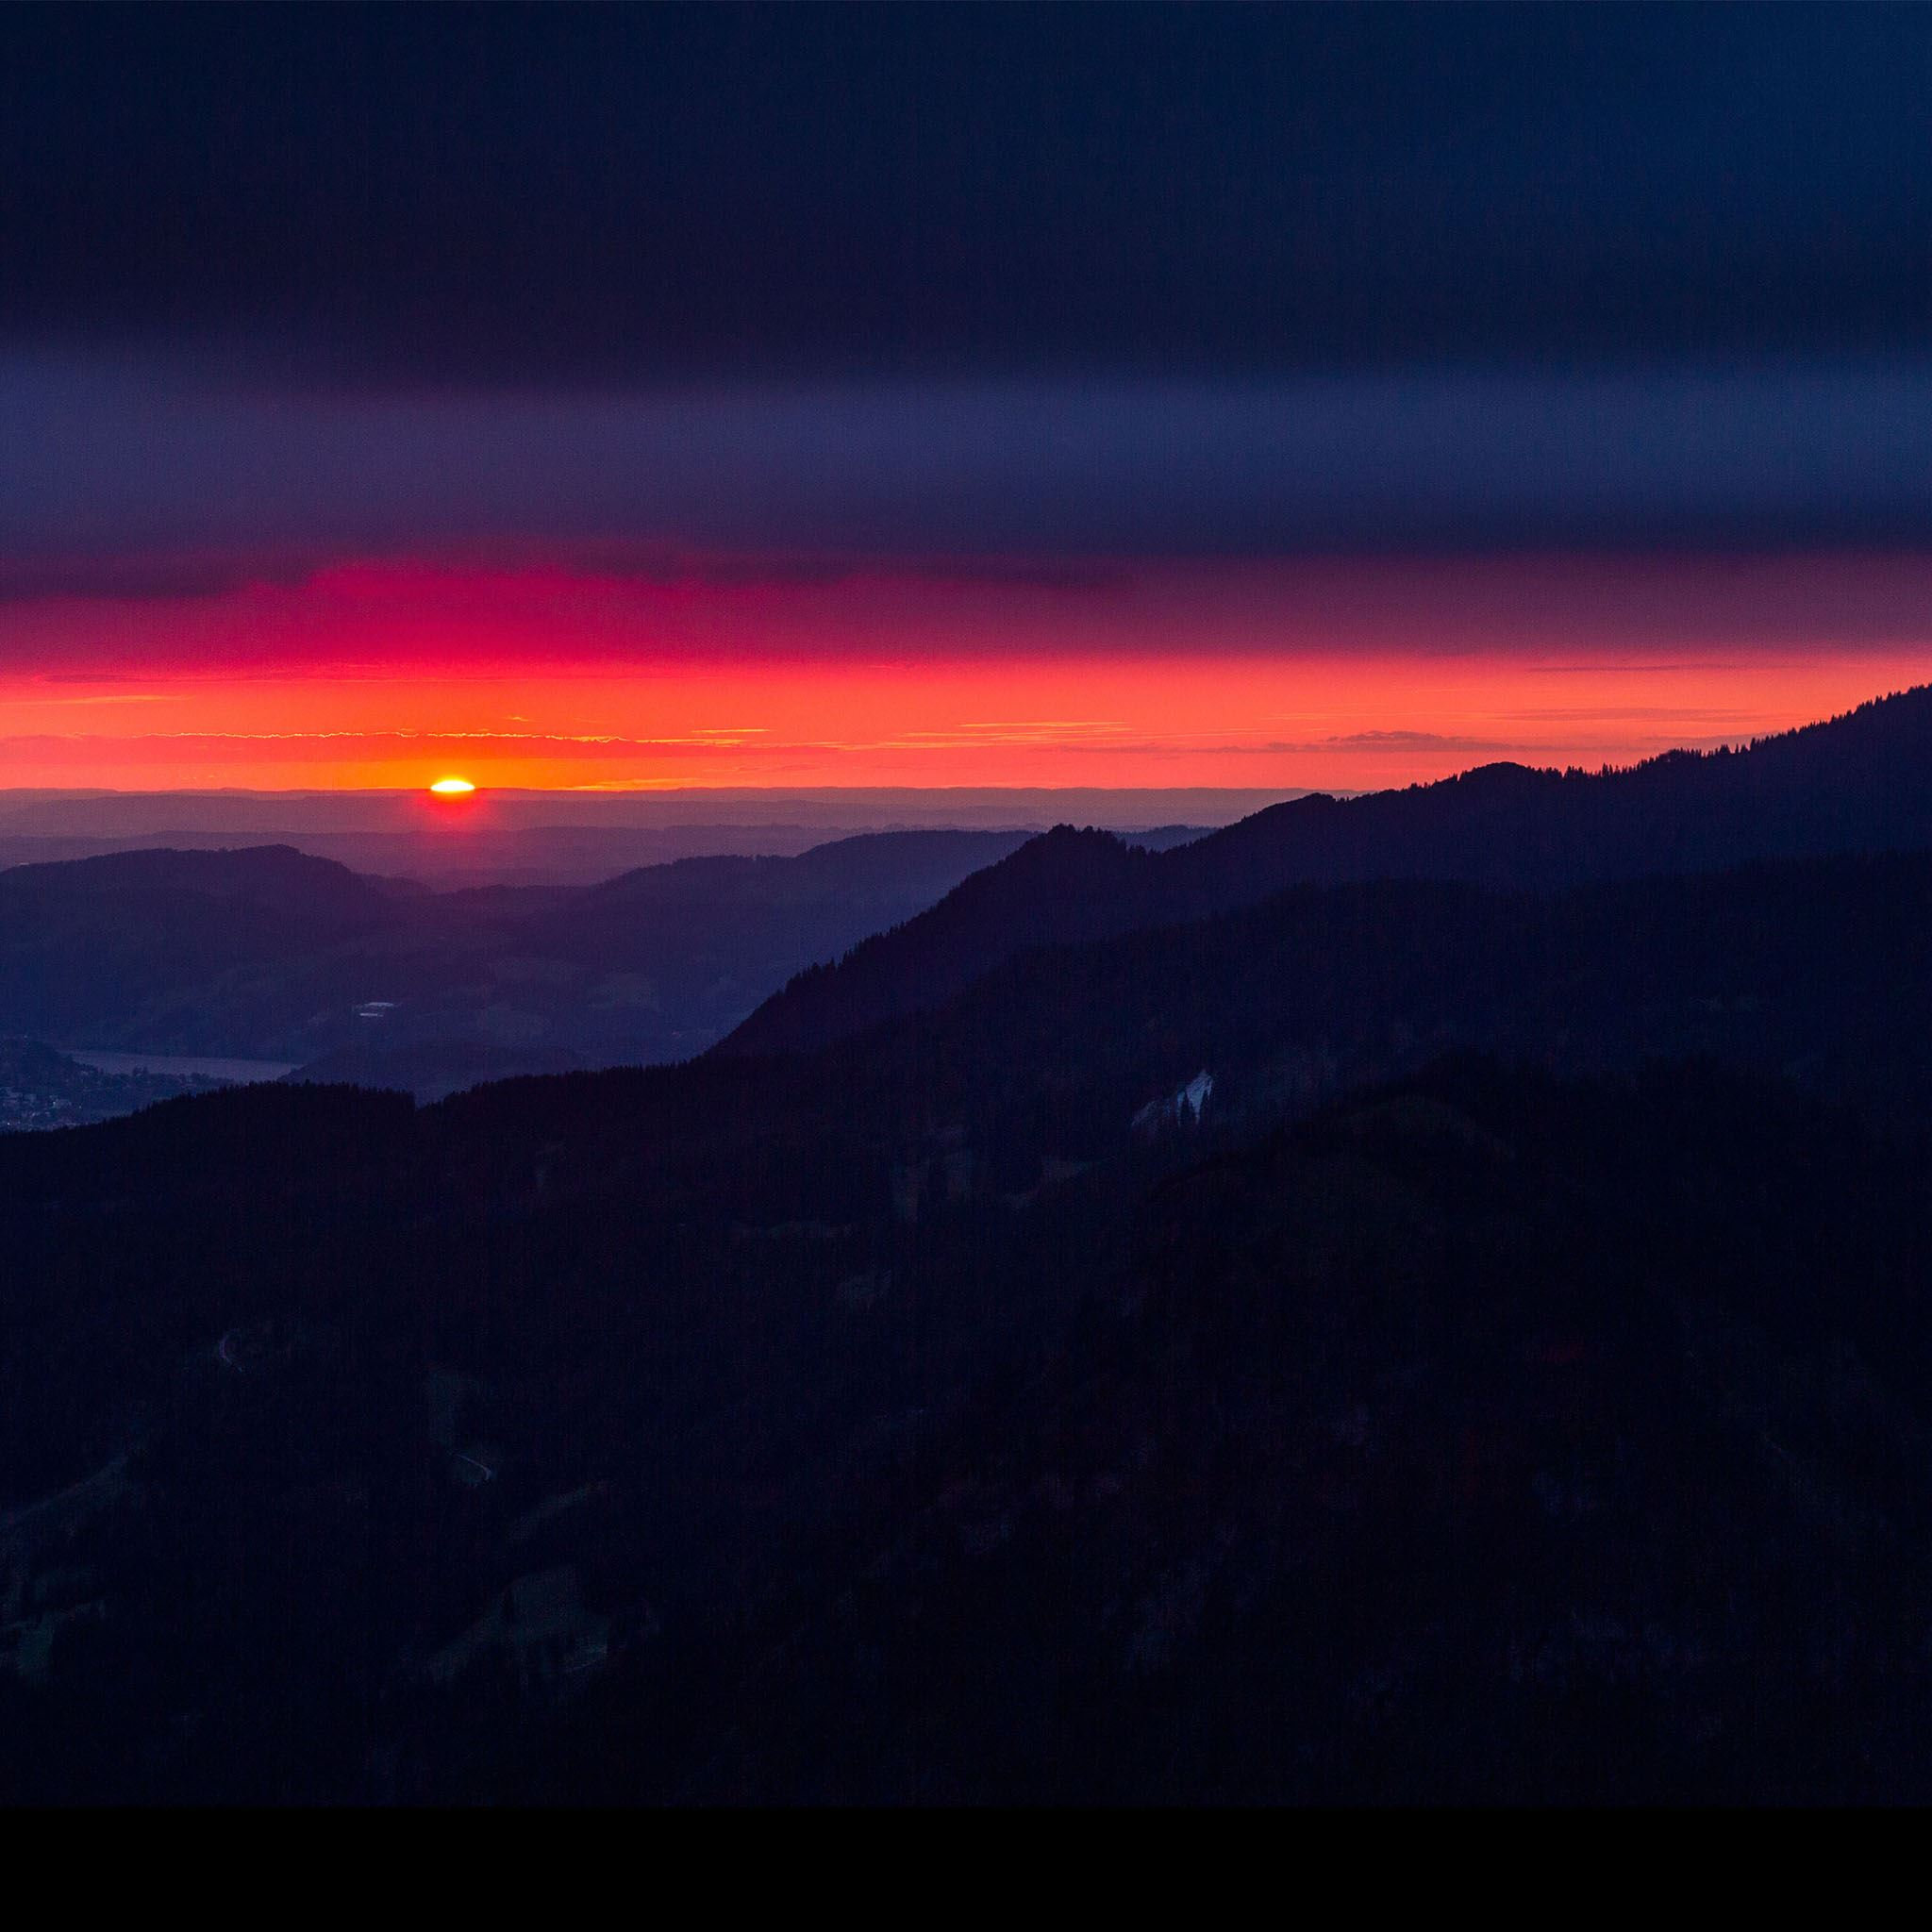 Dark Night Sunset Mountain Sky View Landscape Ipad Air Wallpapers